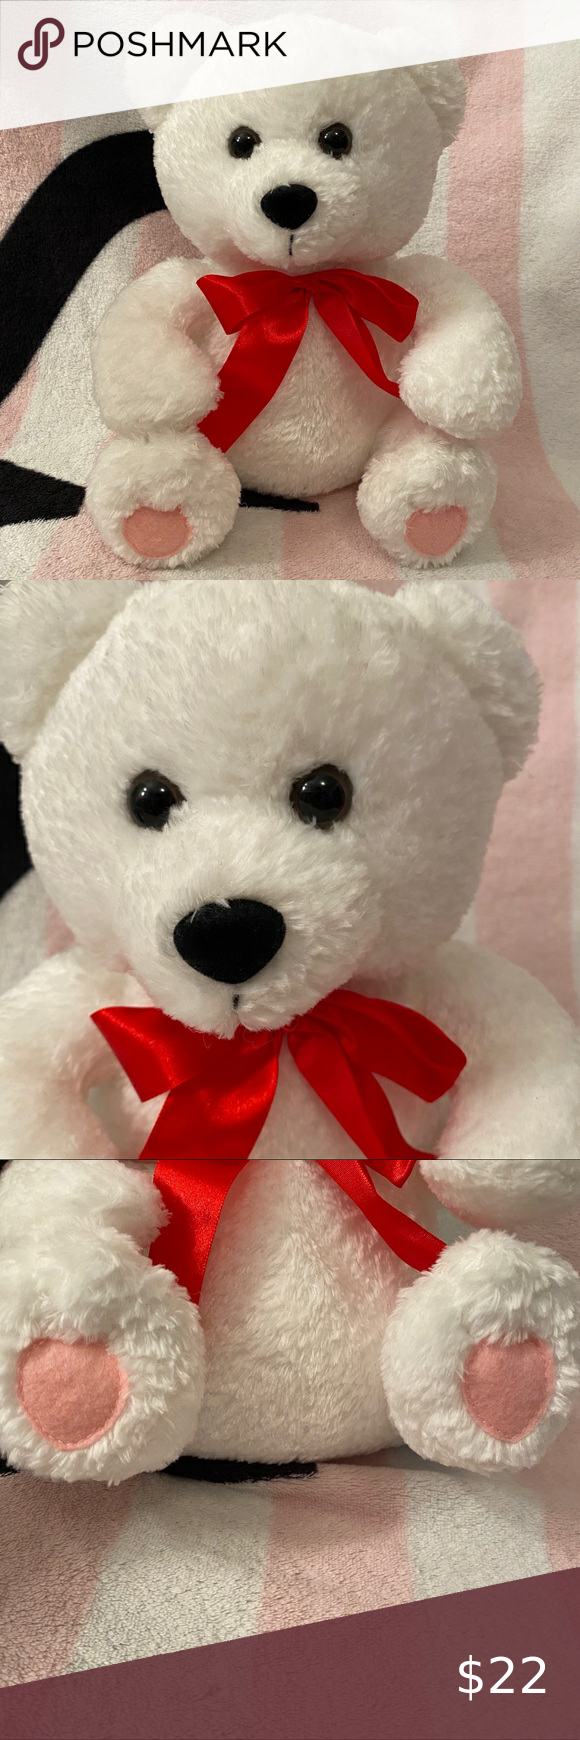 Kids Of America Corp. Stuffed Animal Teddy Bear Kids Of